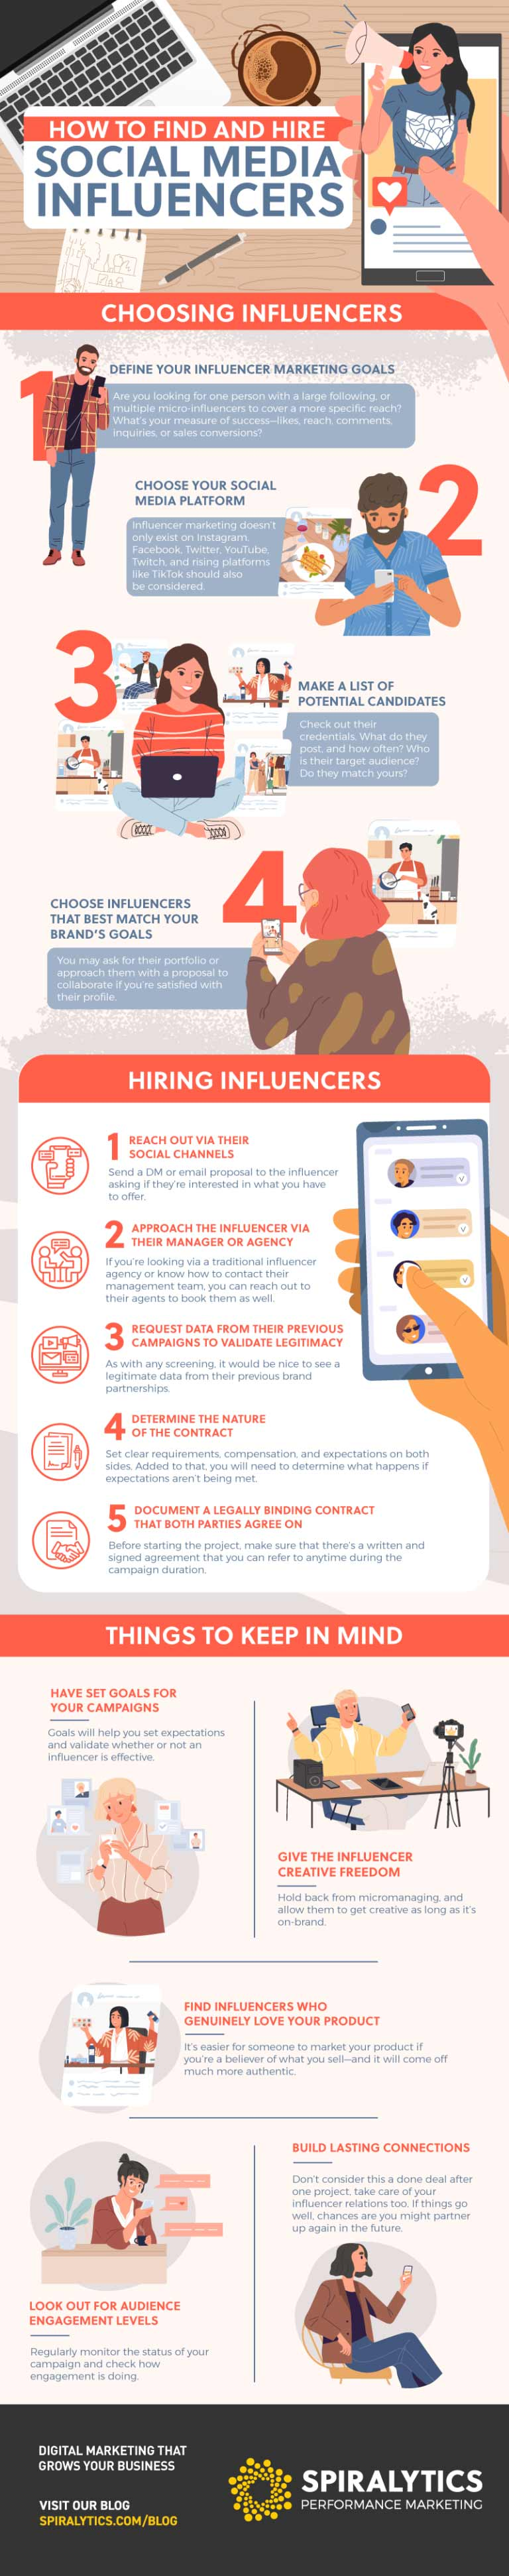 How to find social media influencers - infographic